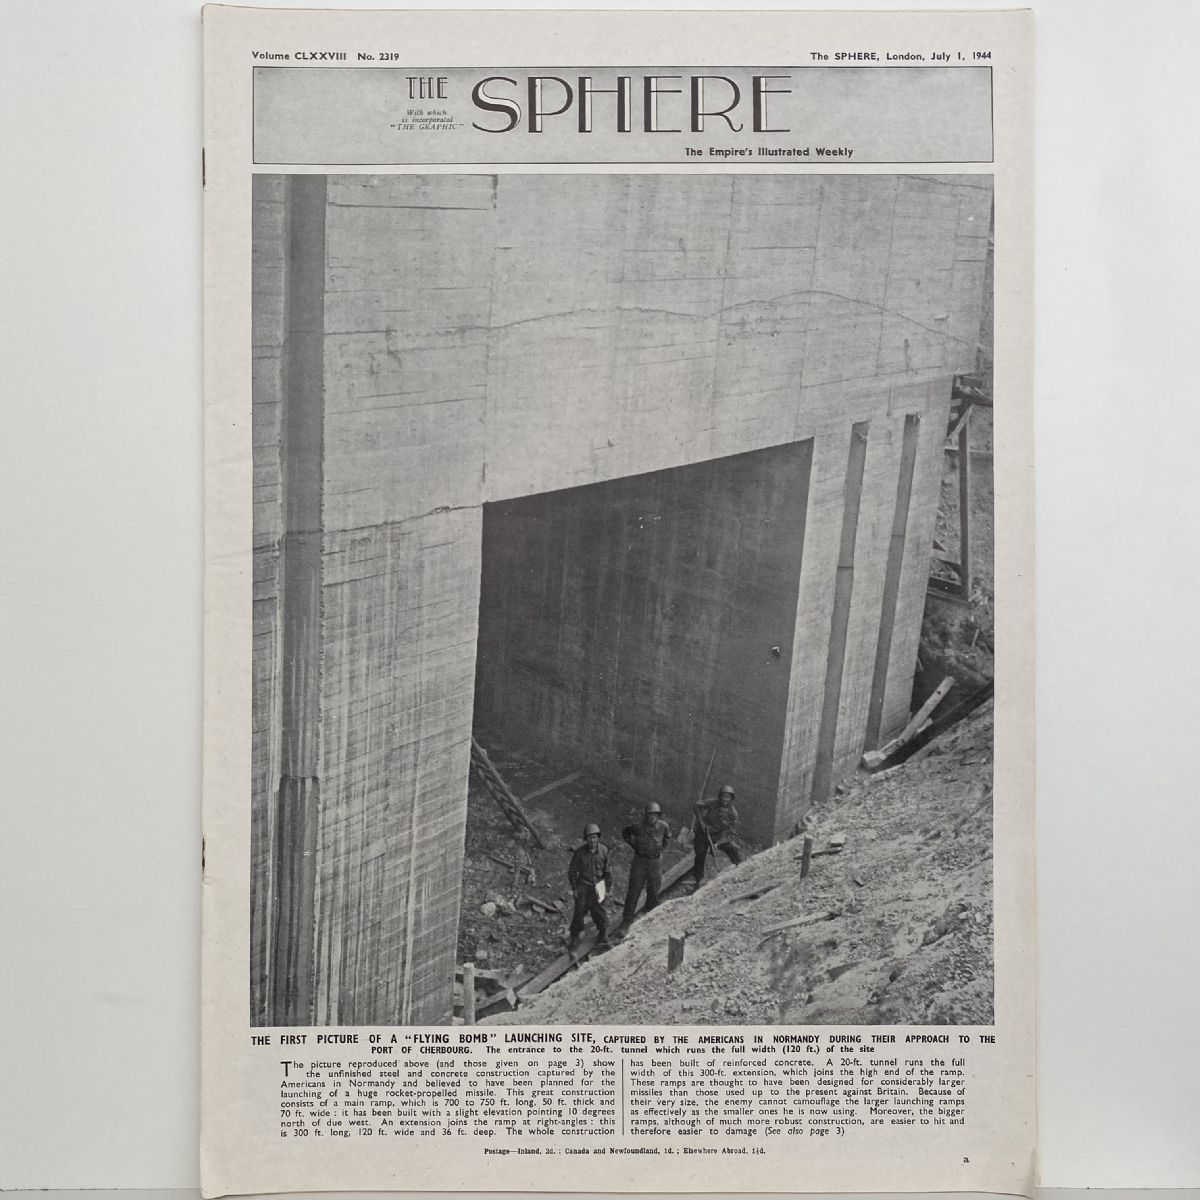 THE SPHERE The Empire's Illustrated Weekly. July 1, 1944. No. 2319